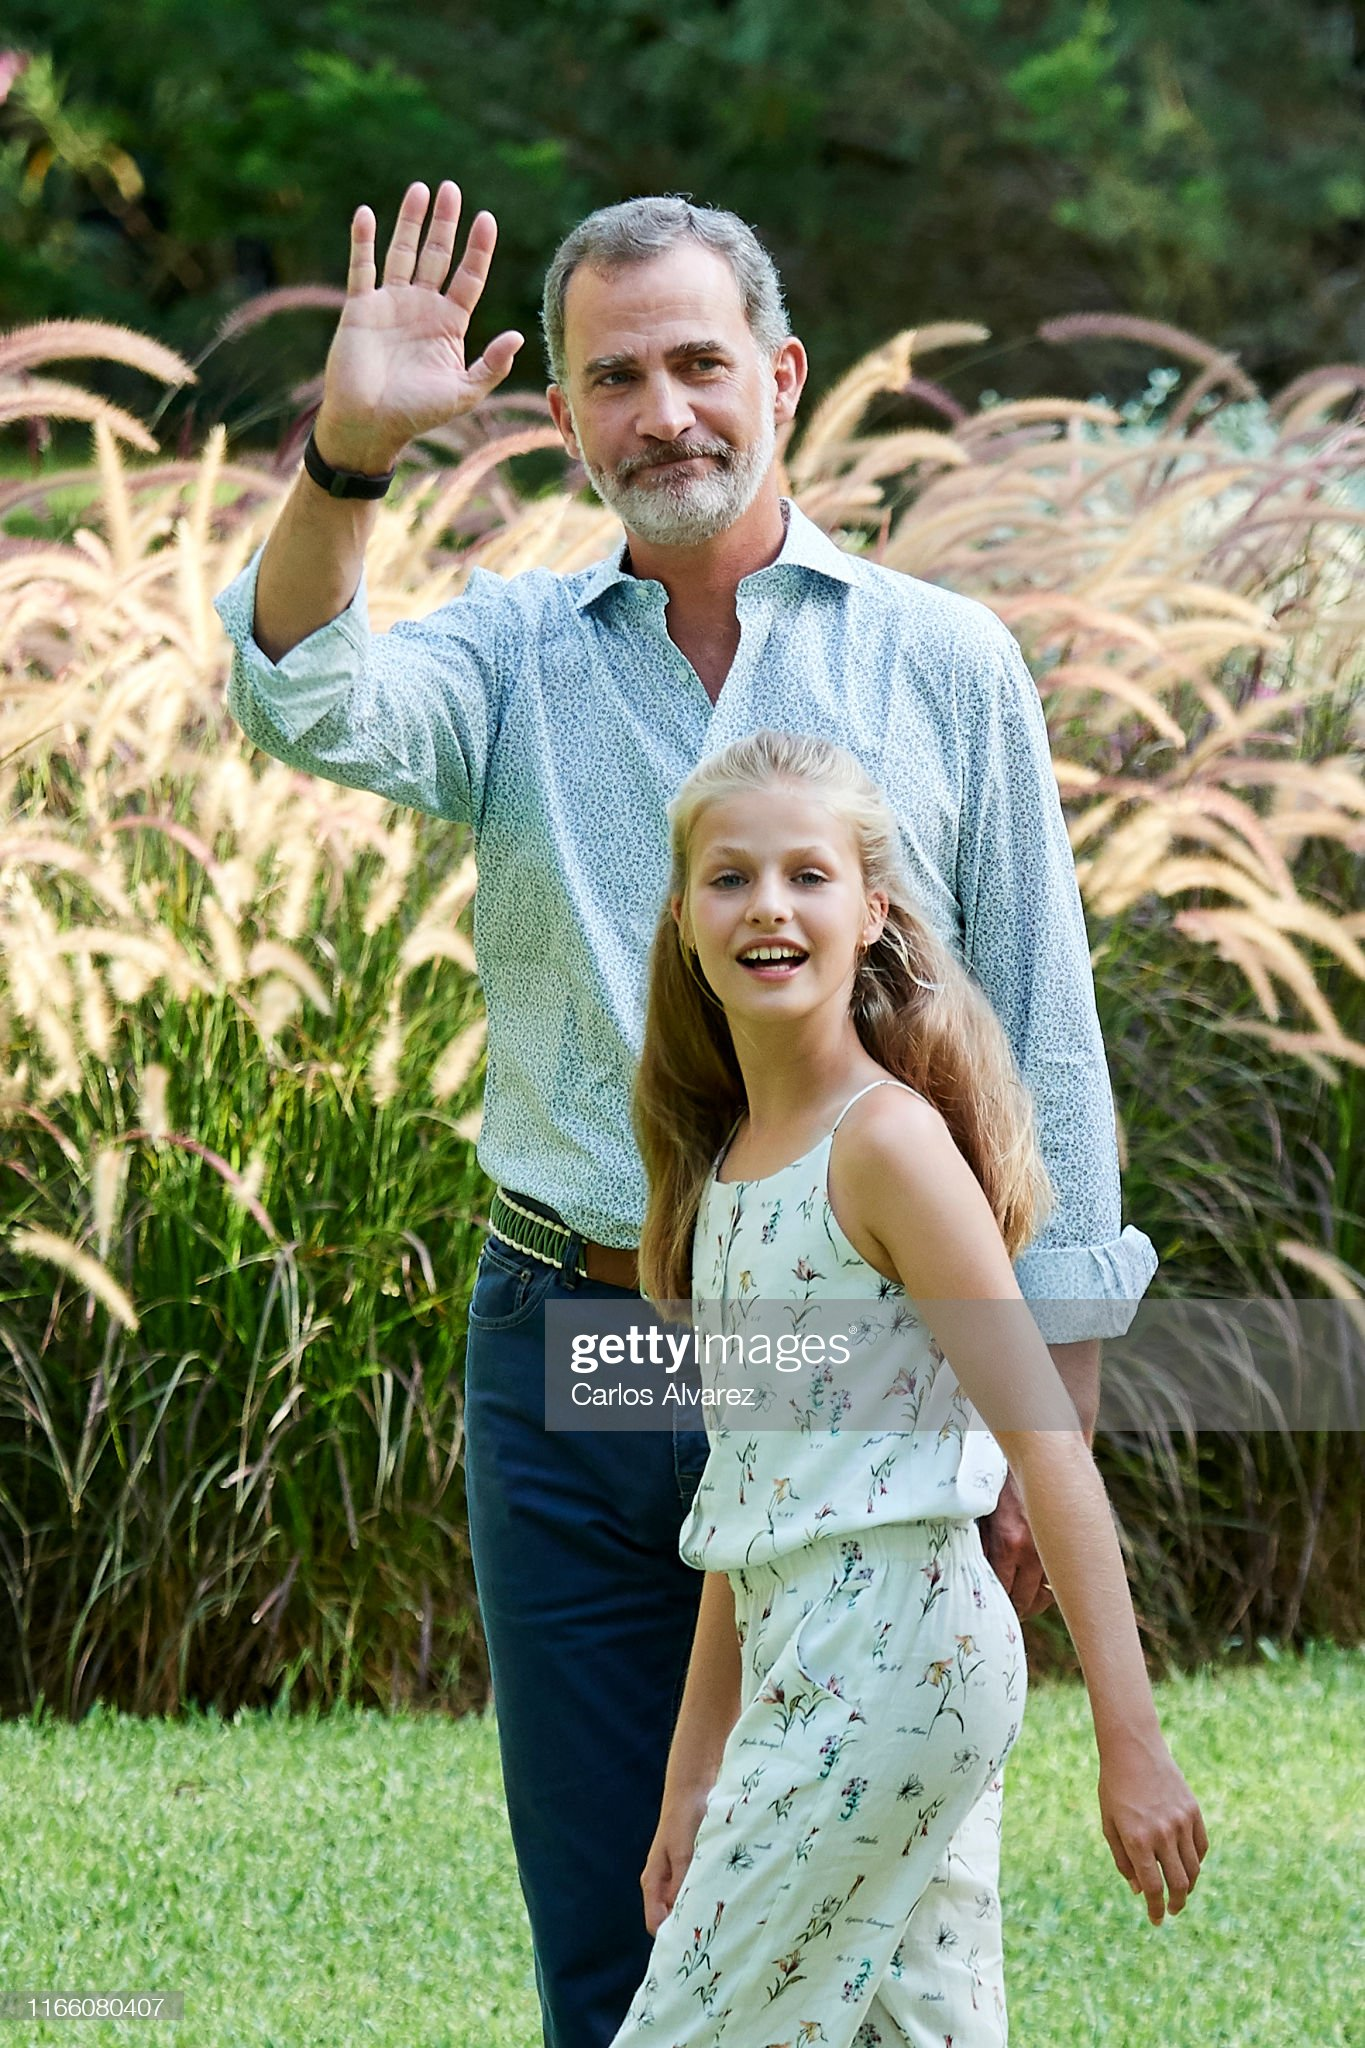 king-felipe-vi-of-spain-and-princess-leonor-of-spain-pose-for-the-picture-id1166080407